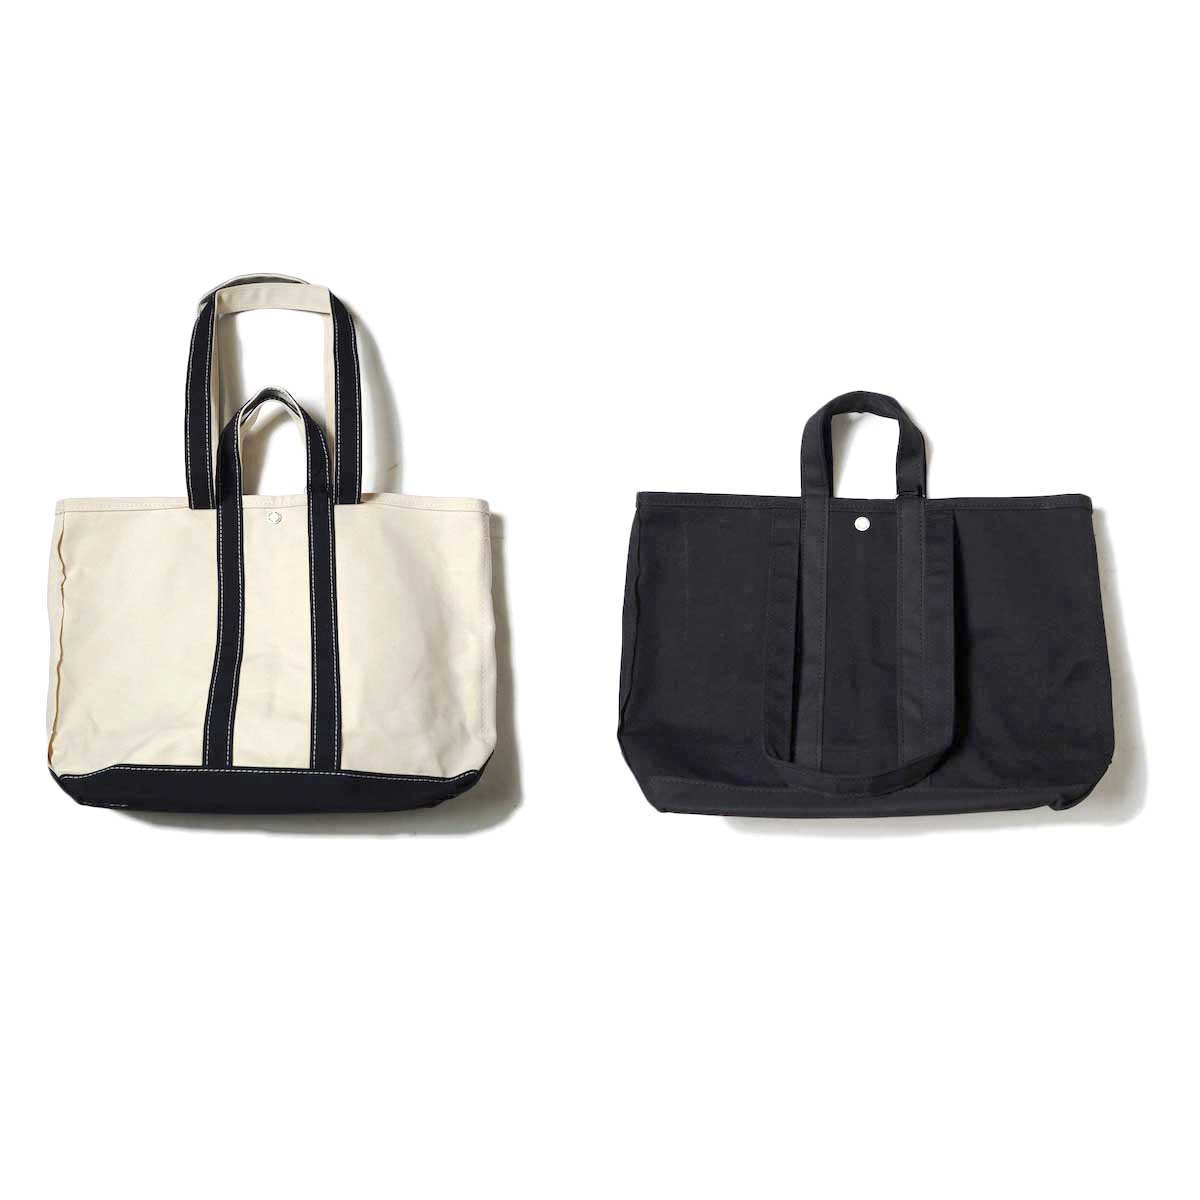 UNIVERSAL PRODUCTS / TEMBEA MARKET TOTE 正面